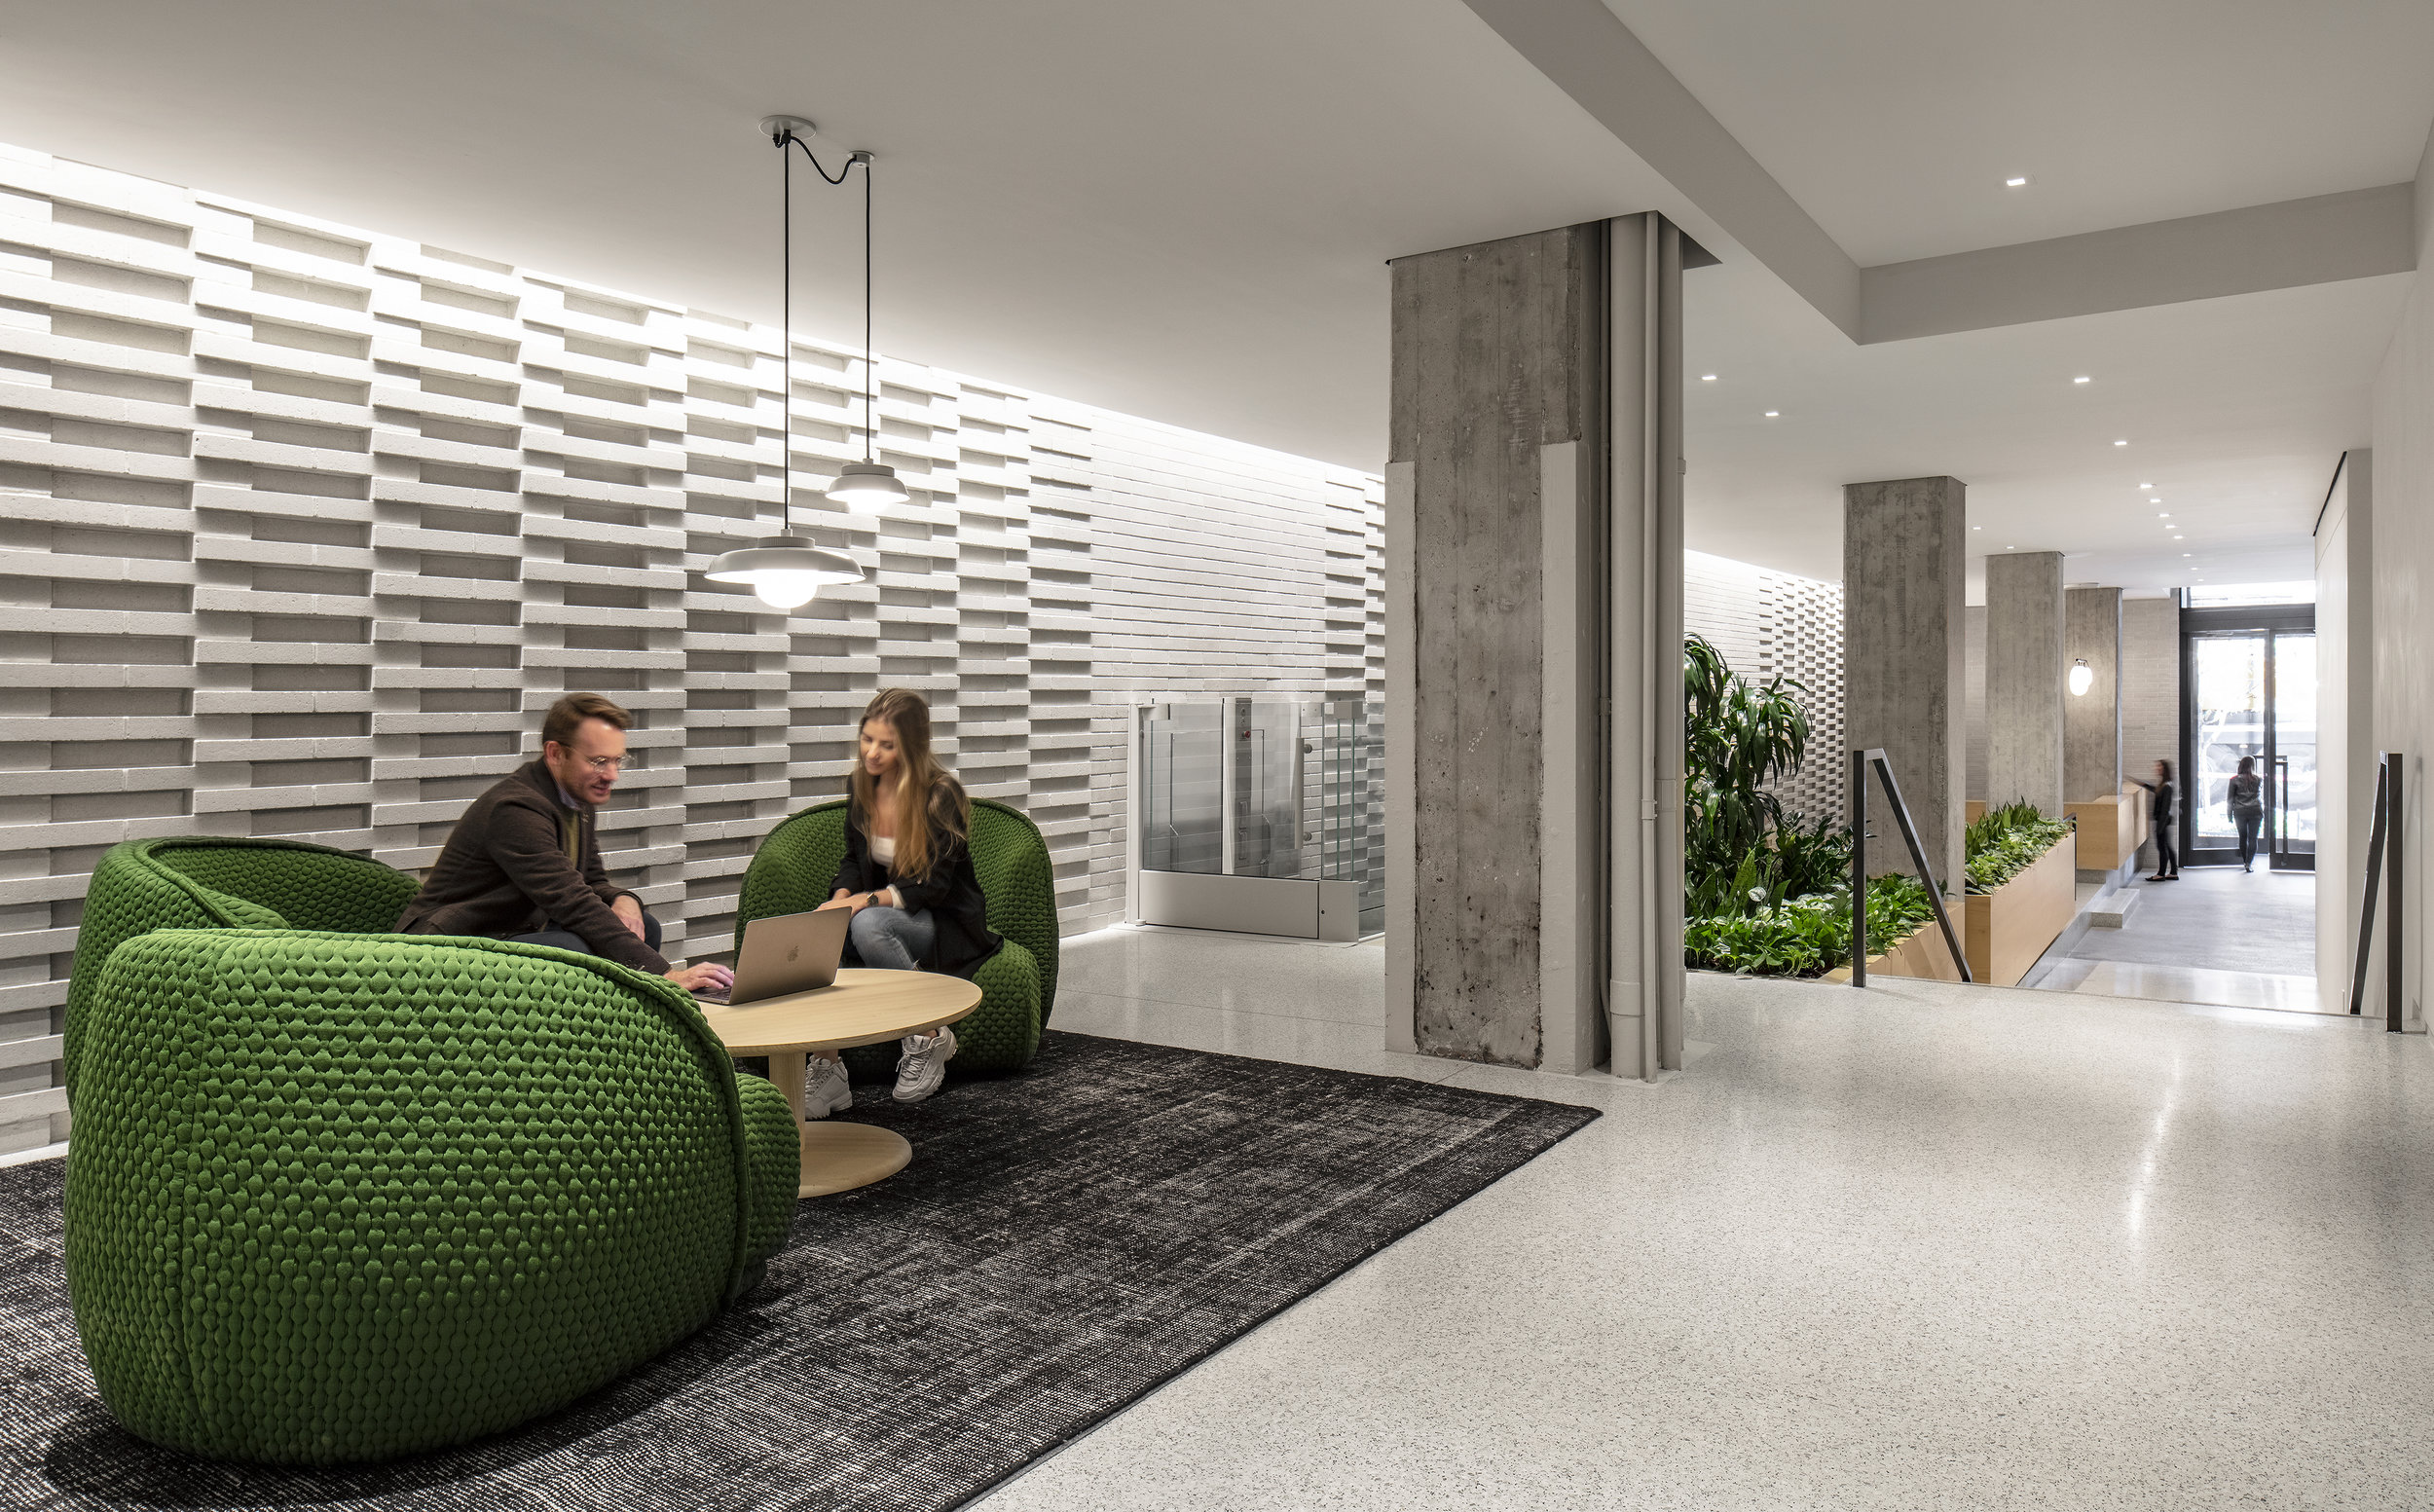 At 155 Avenue of the Americas, an elevation change and comfortable furniture create an ideal environment for an out-of-office meeting.